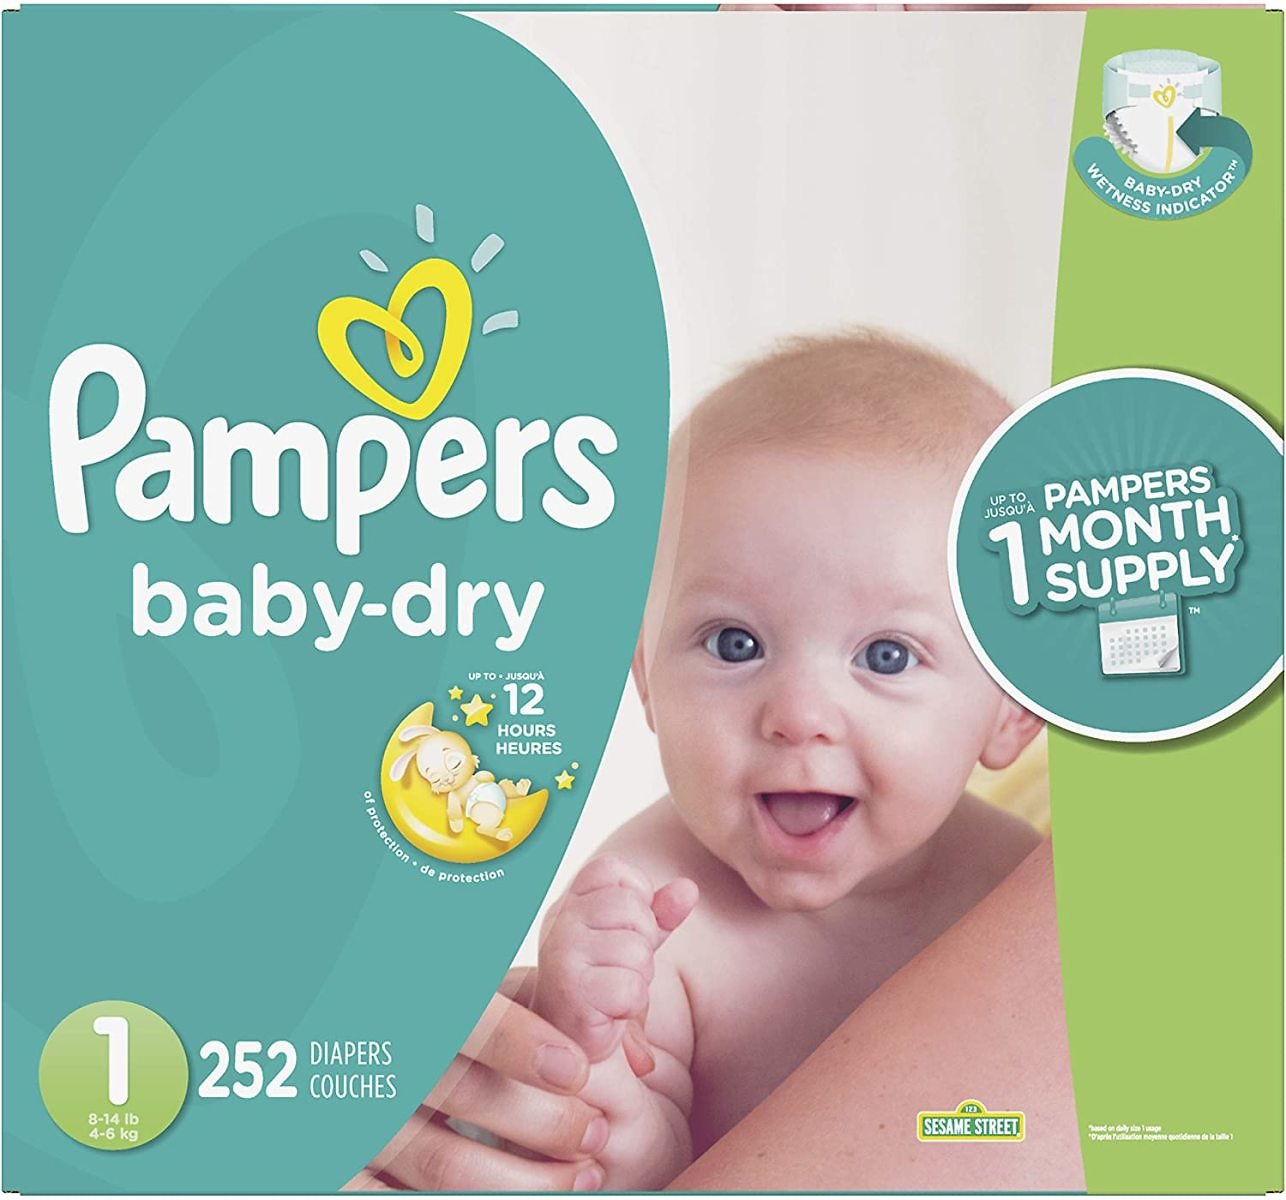 14% Discount - Diapers Newborn/Size 1 (8-14 Lb), 252 Count - Pampers Baby Dry Disposable Baby Diapers, ONE MONTH SUPPLY